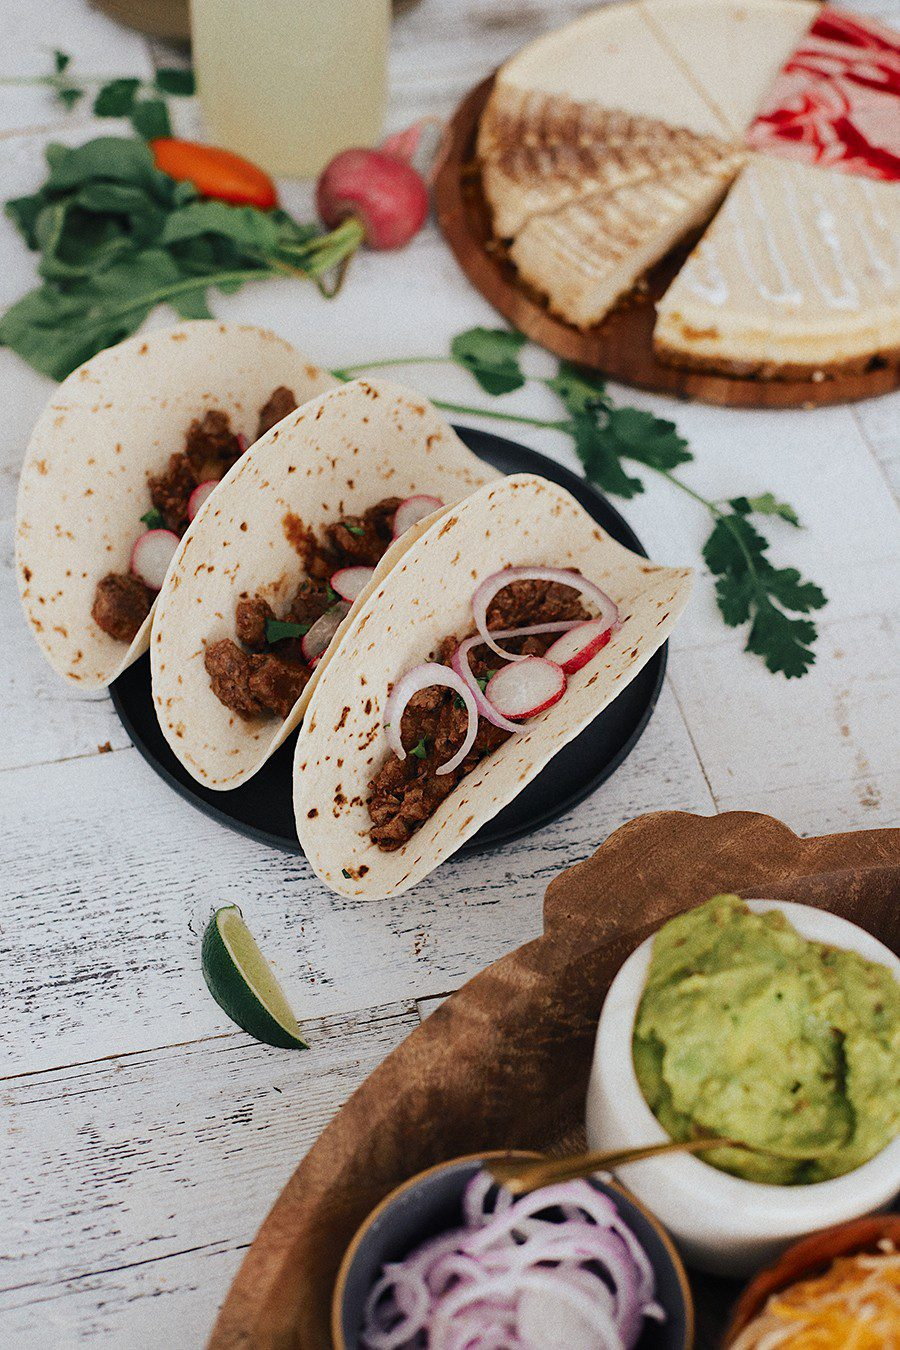 Easy Weeknight Crockpot Meals: Slow Cooker Barbacoa Beef Tacos | Omaha Steaks by popular Florida lifestyle blog, Fresh Mommy Blog: image of barbacoa beef tacos, sliced cheesecake, guacamole, red onions, grated cheese, hard taco shells, sour cream, black olives, and tortillas.